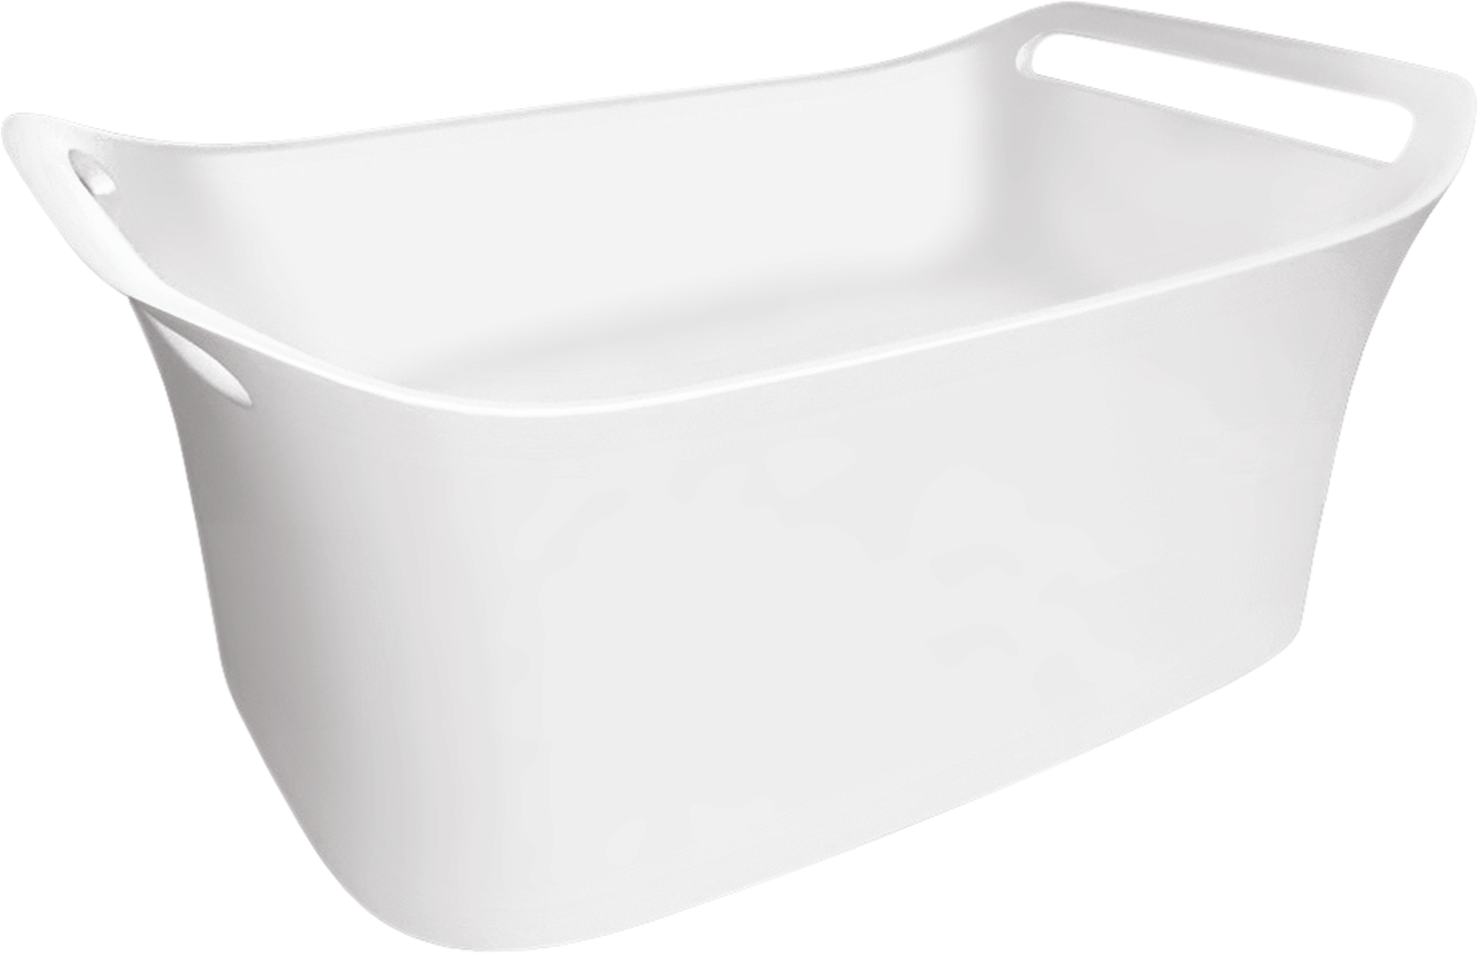 Axor AXOR Urquiola Vessel Sink, Wall-Mounted